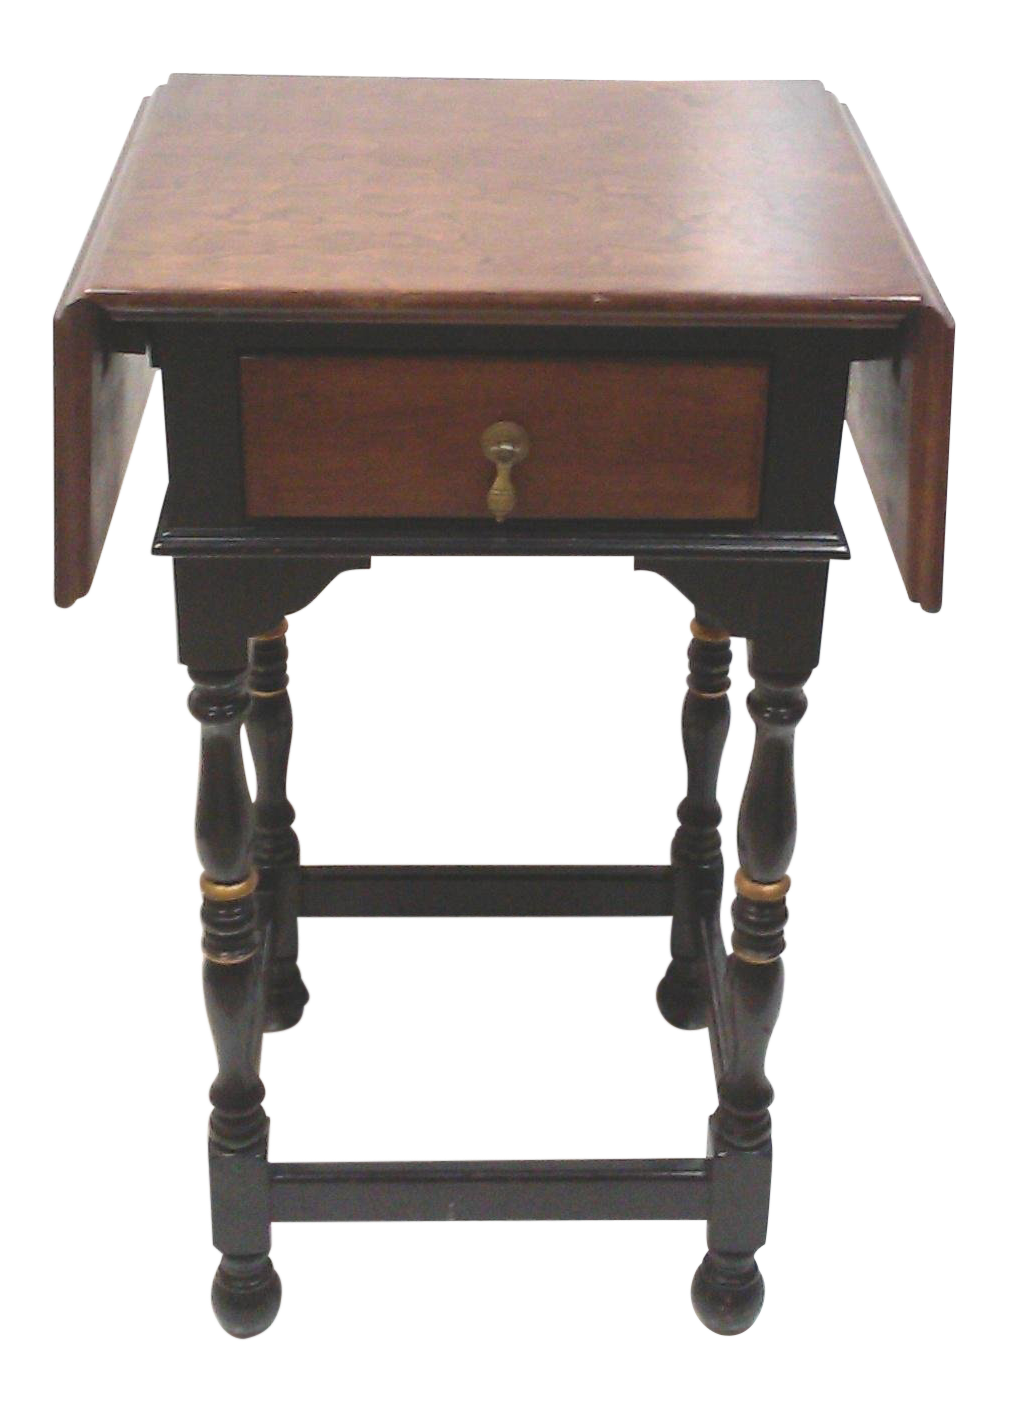 stickley drop leaf accent table chairish piece coffee set pier one bedding reclaimed barn door art deco furniture metal side teal end modern clock cool bar twisted wood rustic